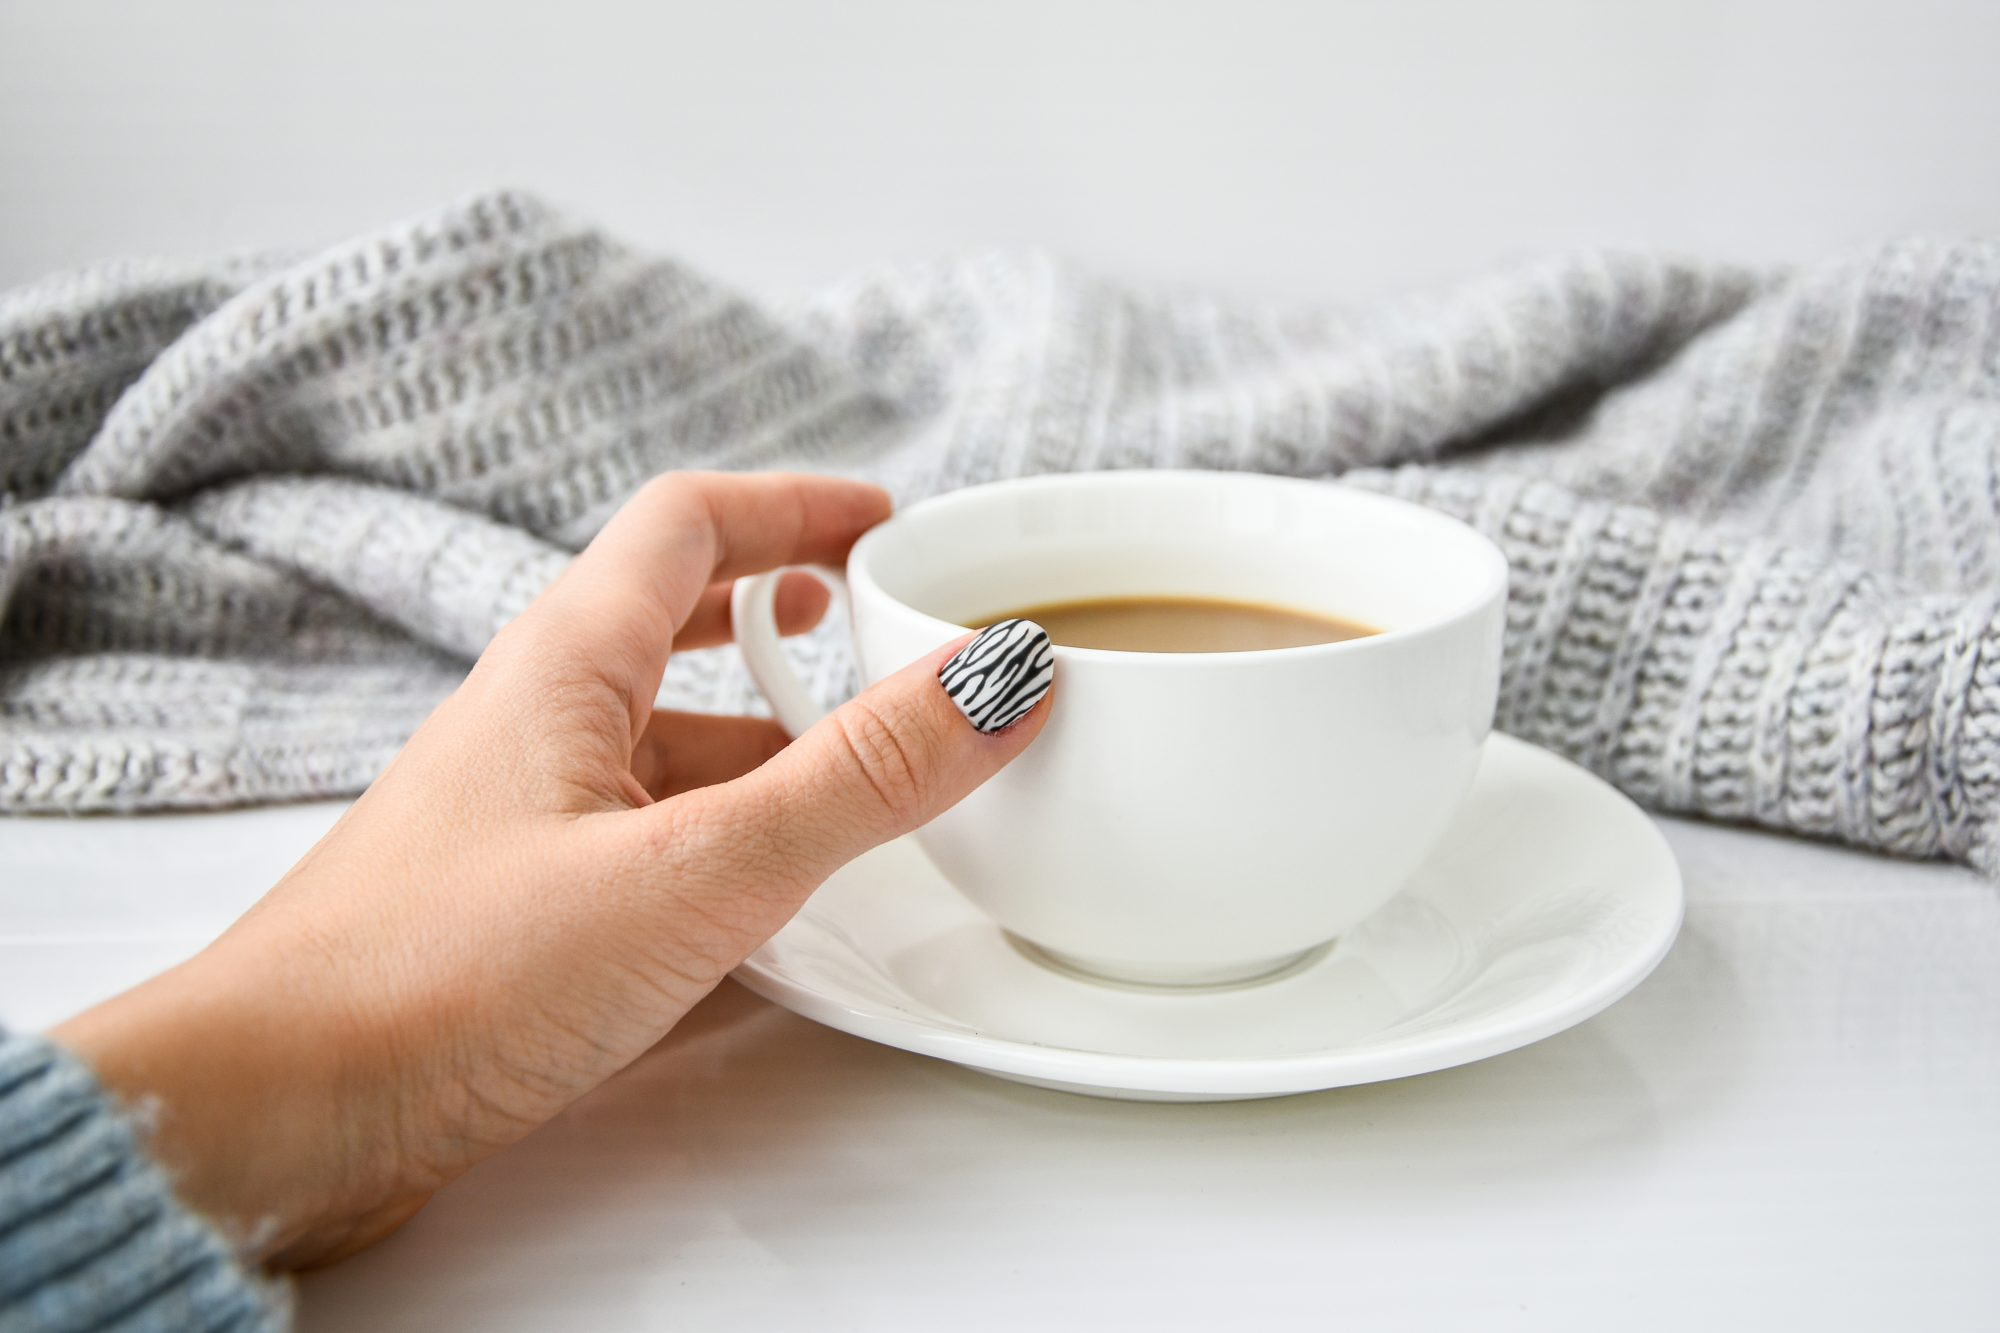 hand with manicure grabbing coffee cup